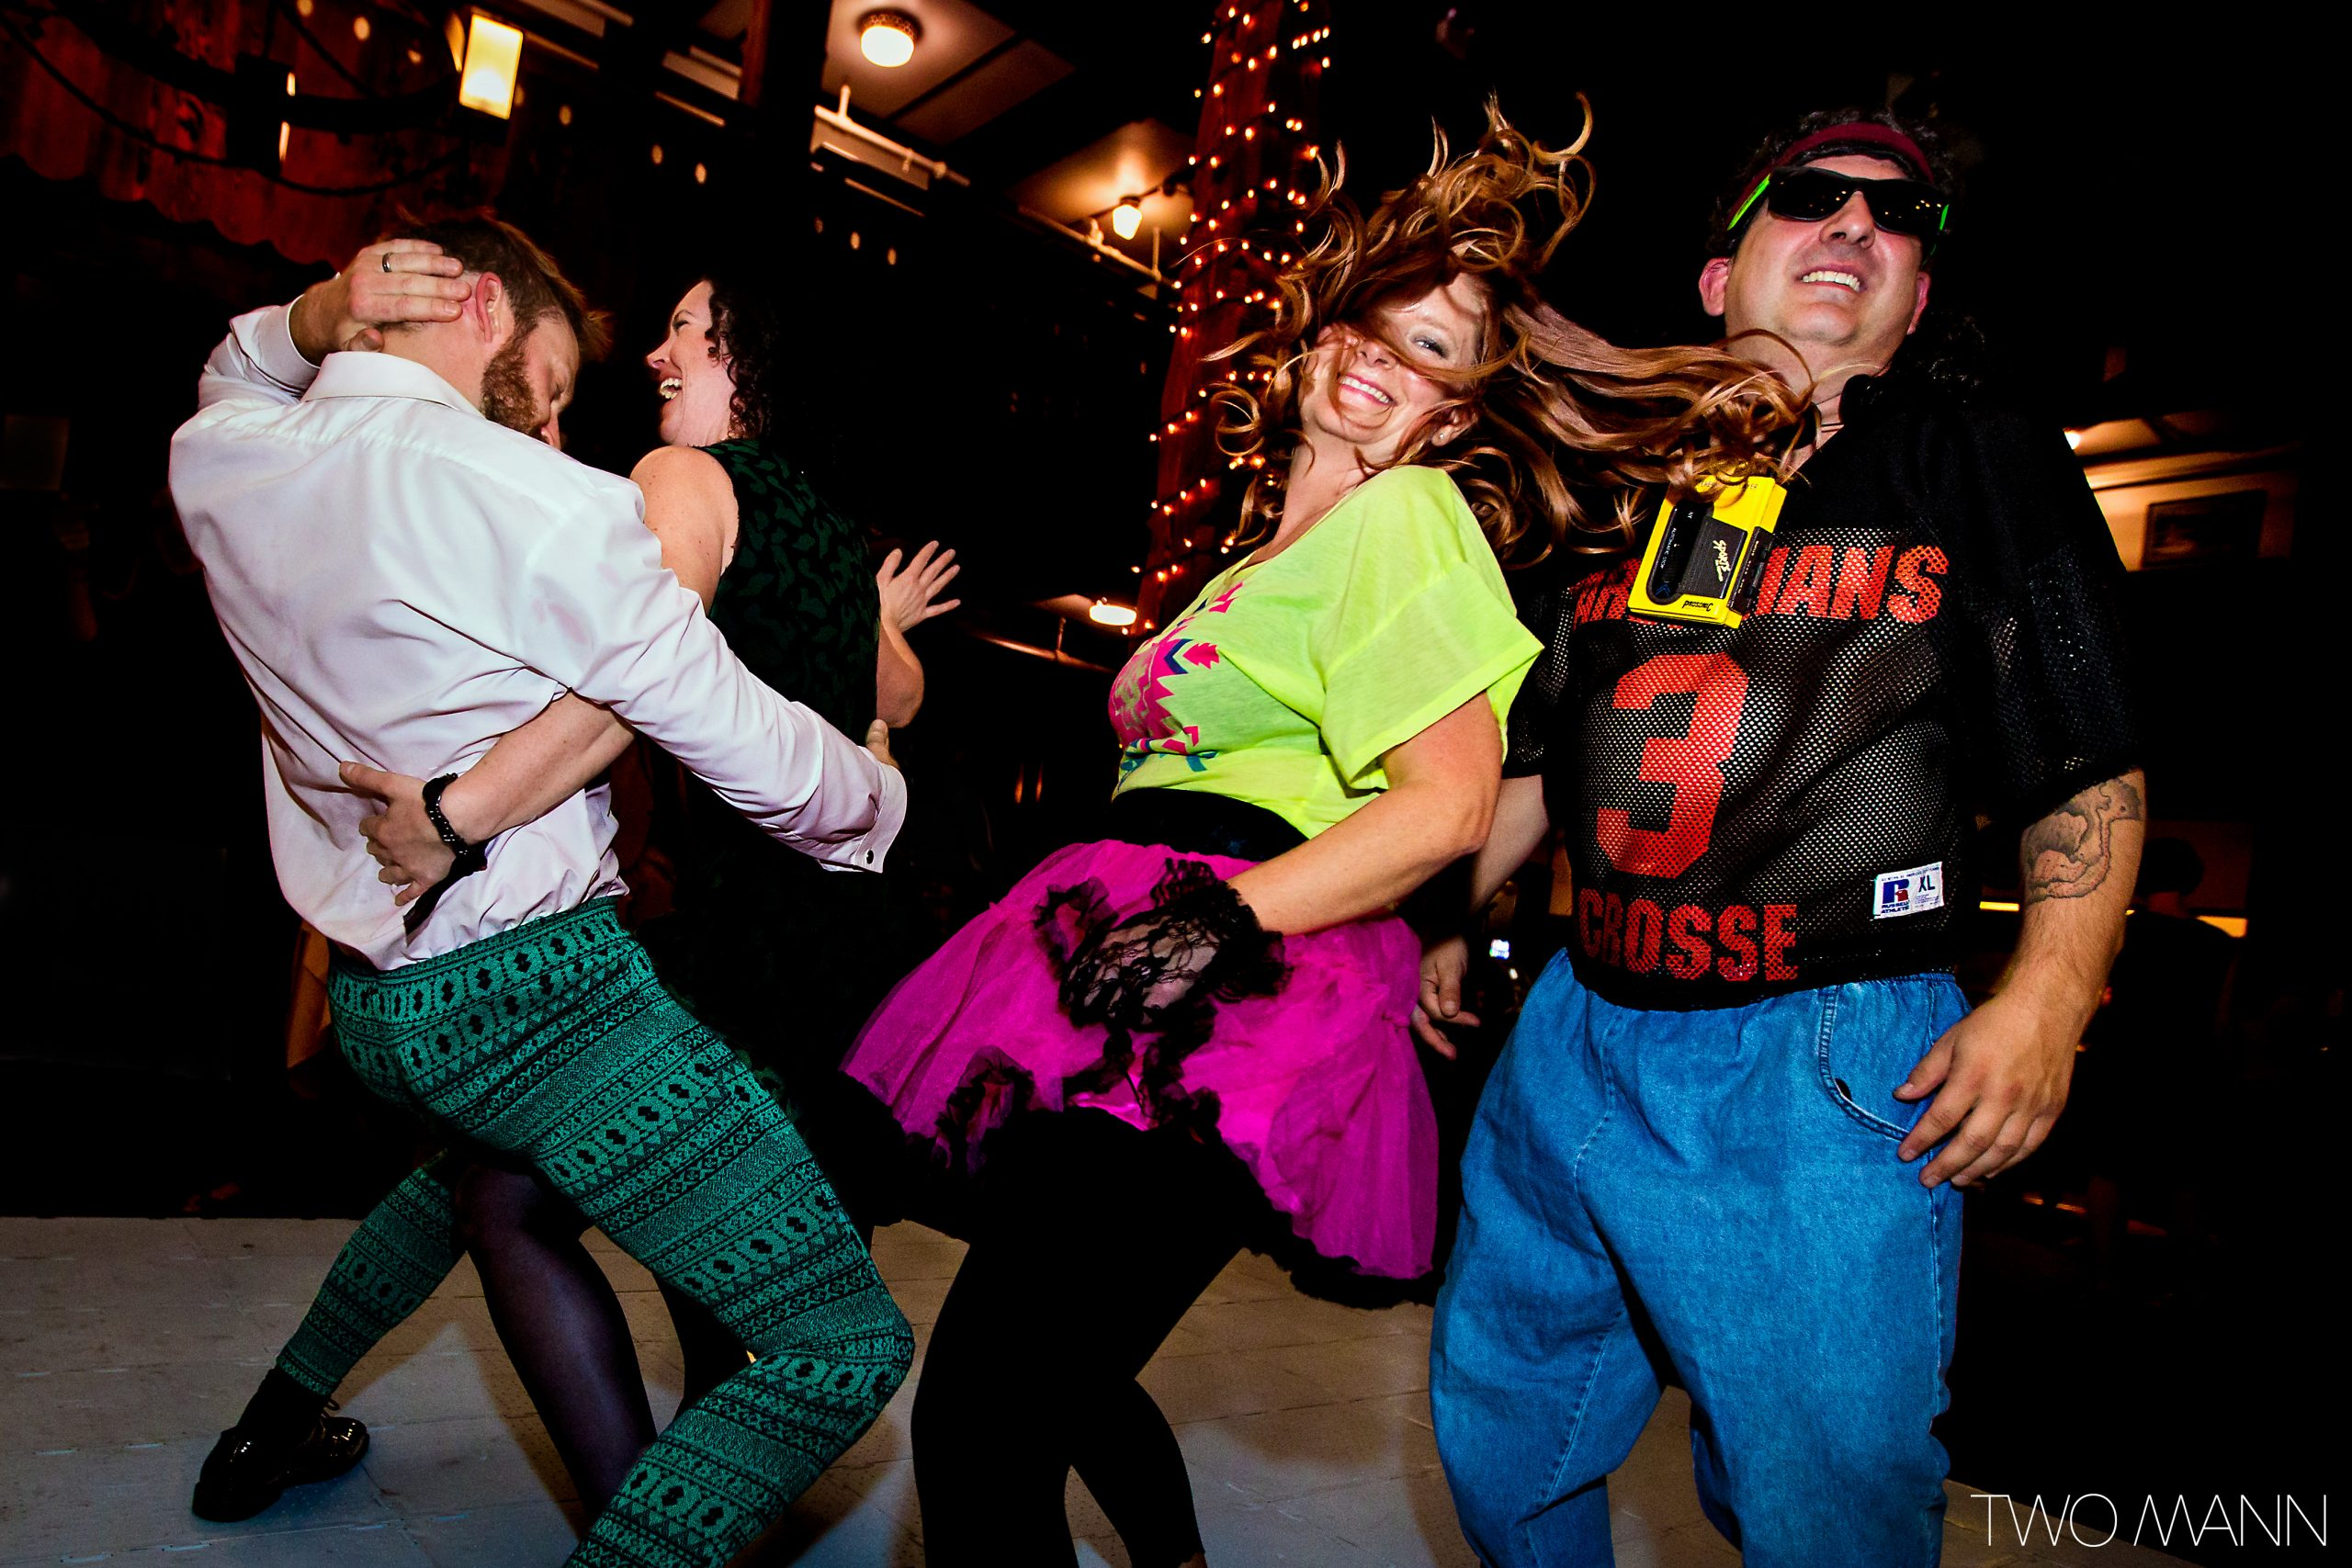 groom and wedding guests dancing at a retro 80's reception dance party